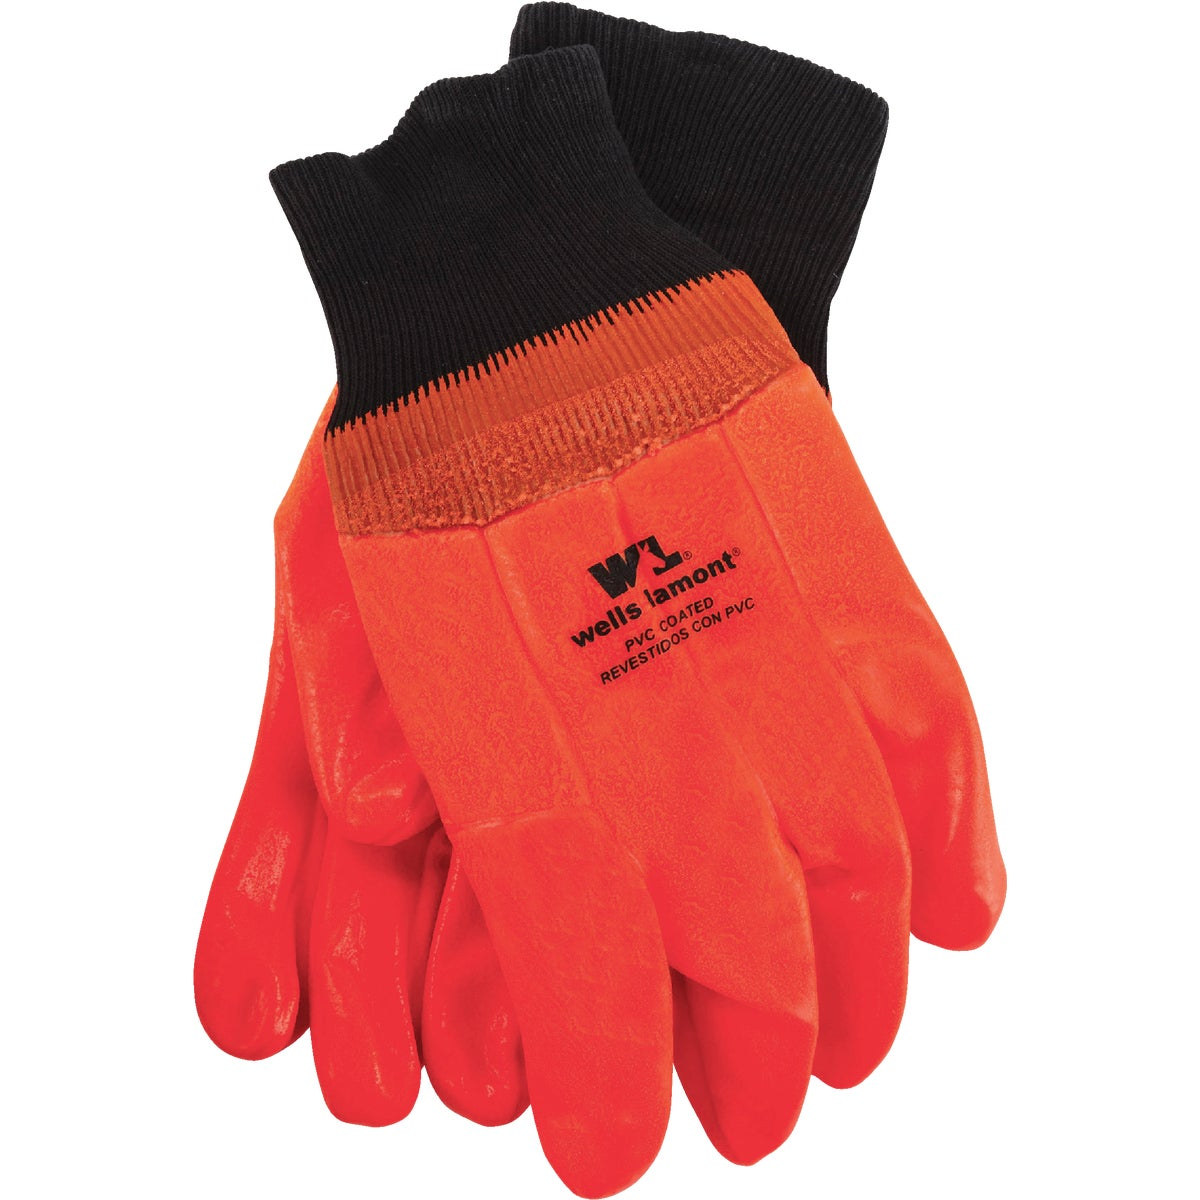 ORNG PVC INSULATED GLOVE - 164 by Wells Lamont